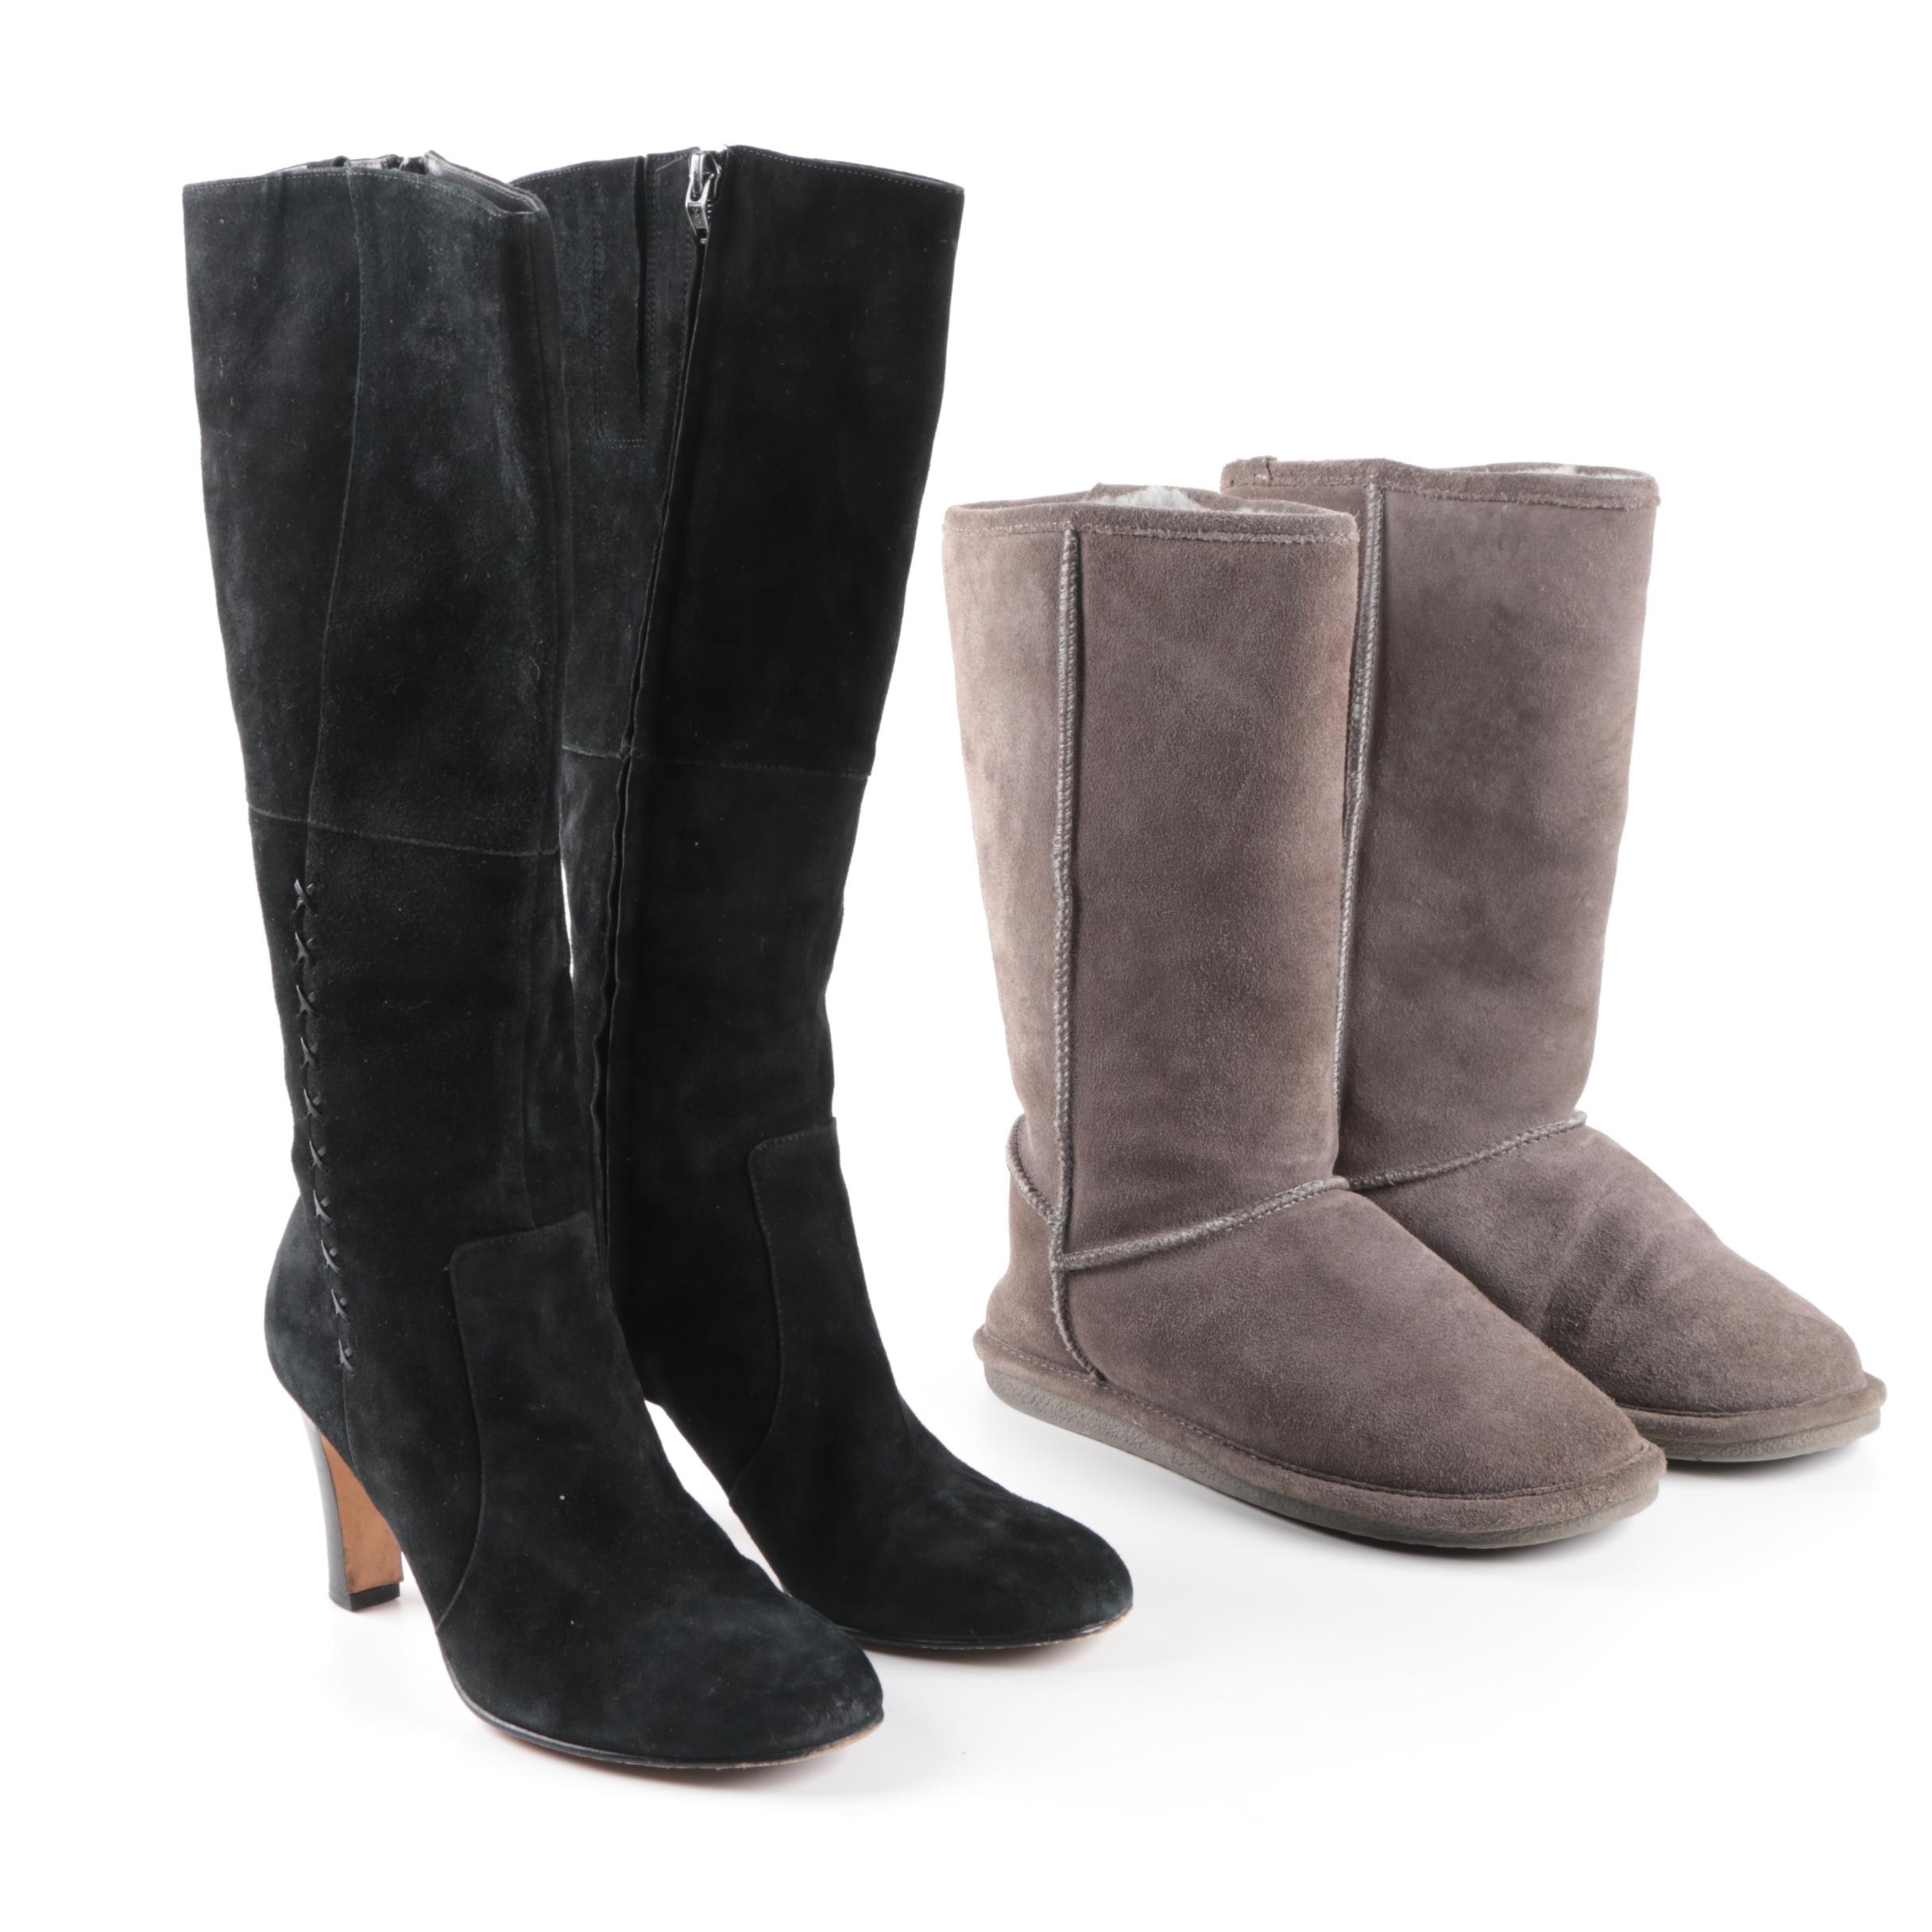 Women's Laura Ashley High Heel Boots and Bjorndal Suede Sheepskin Boots